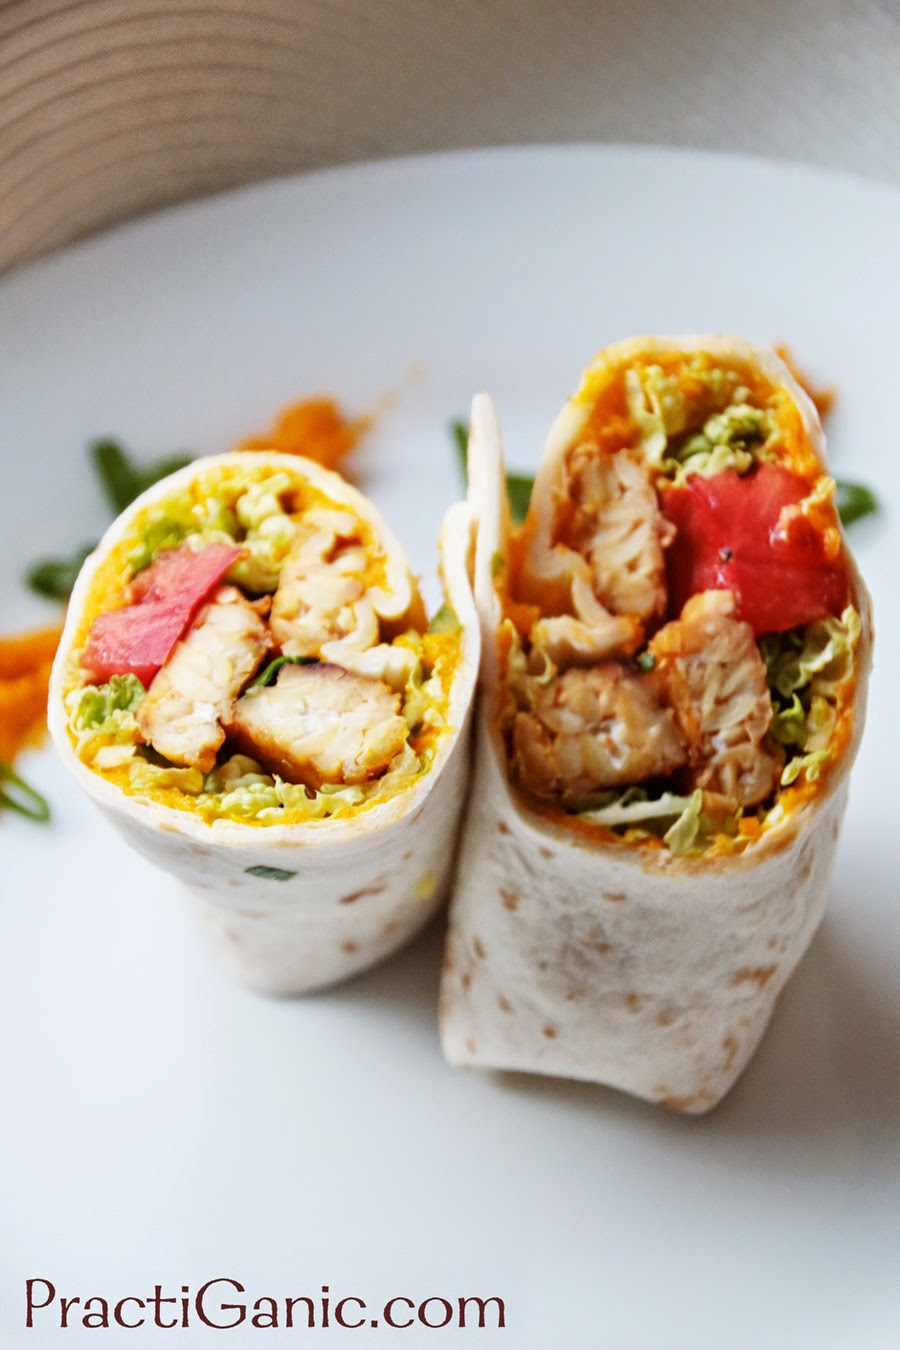 Smoked Tempeh & Spicy Carrots Wraps